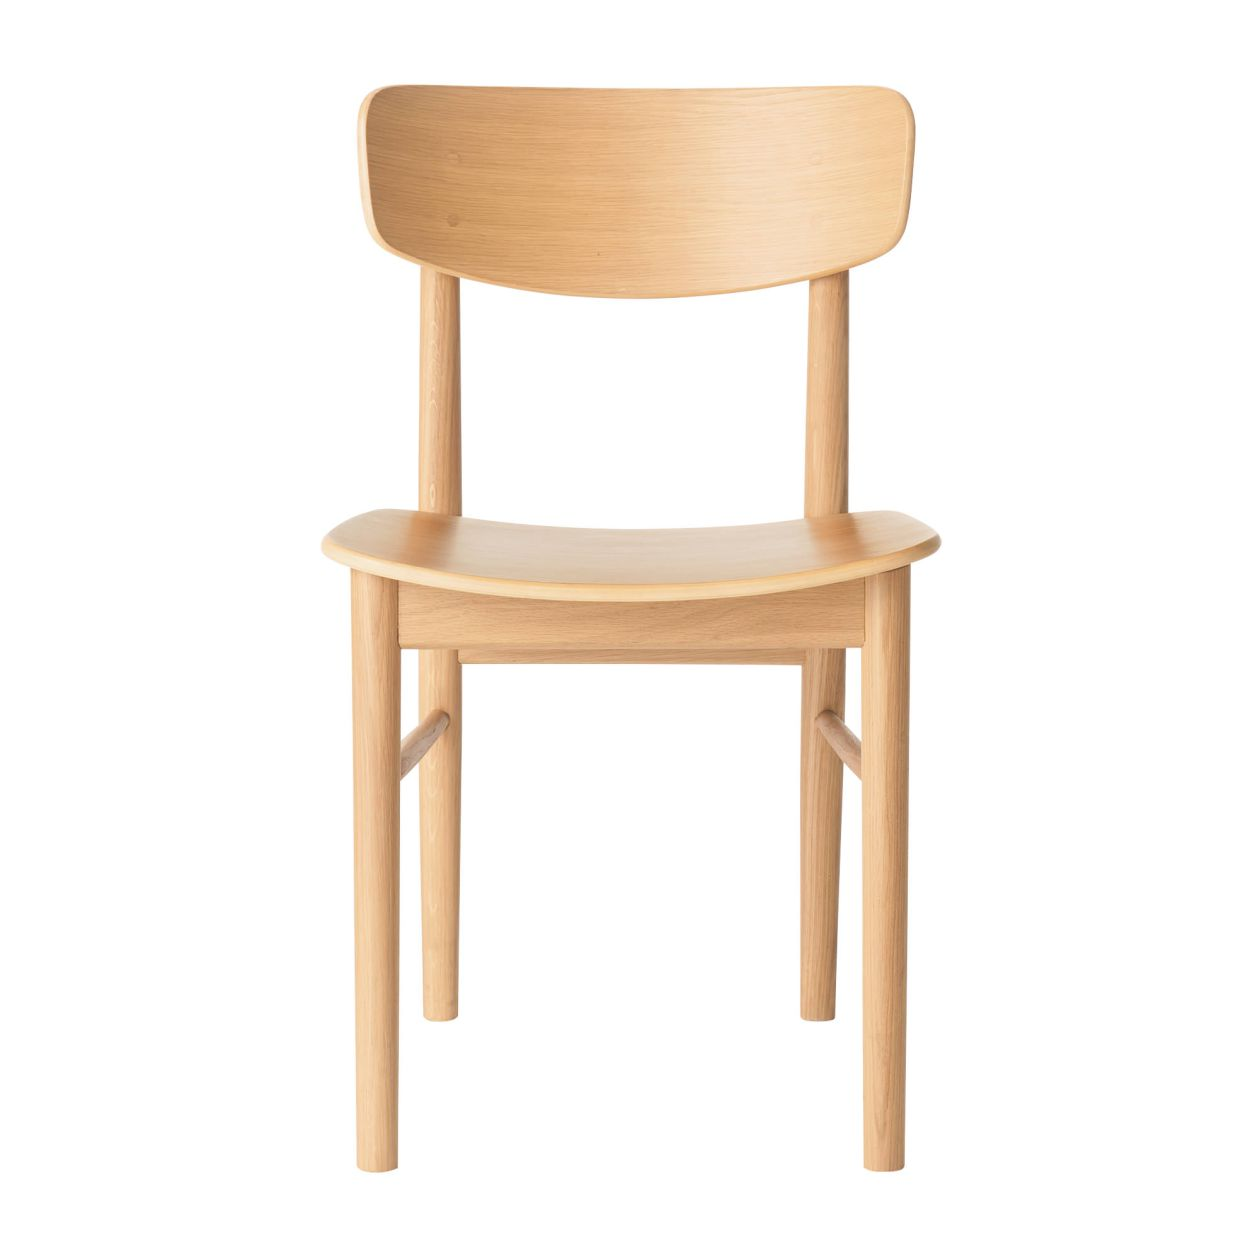 ROUND CHAIR / OAK